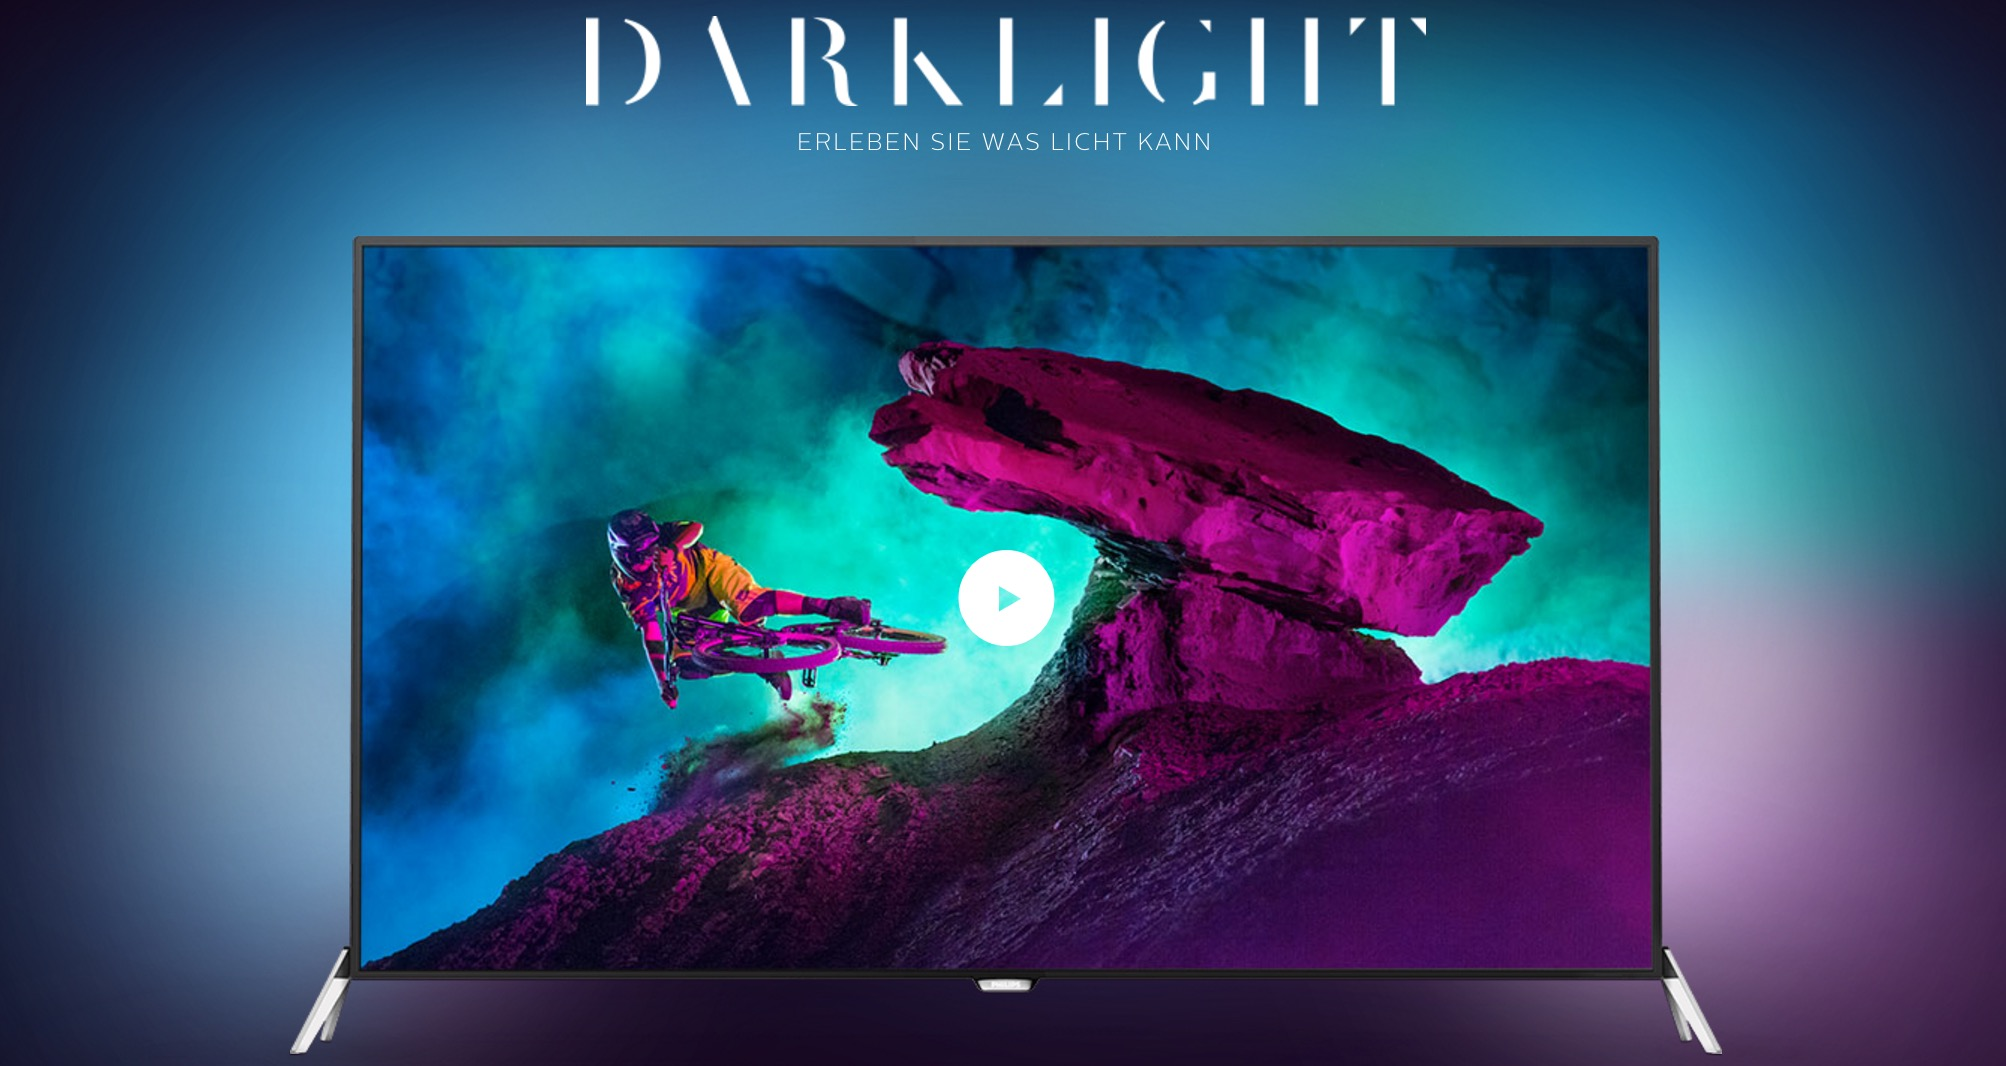 Philips Ambilight TV Darklight